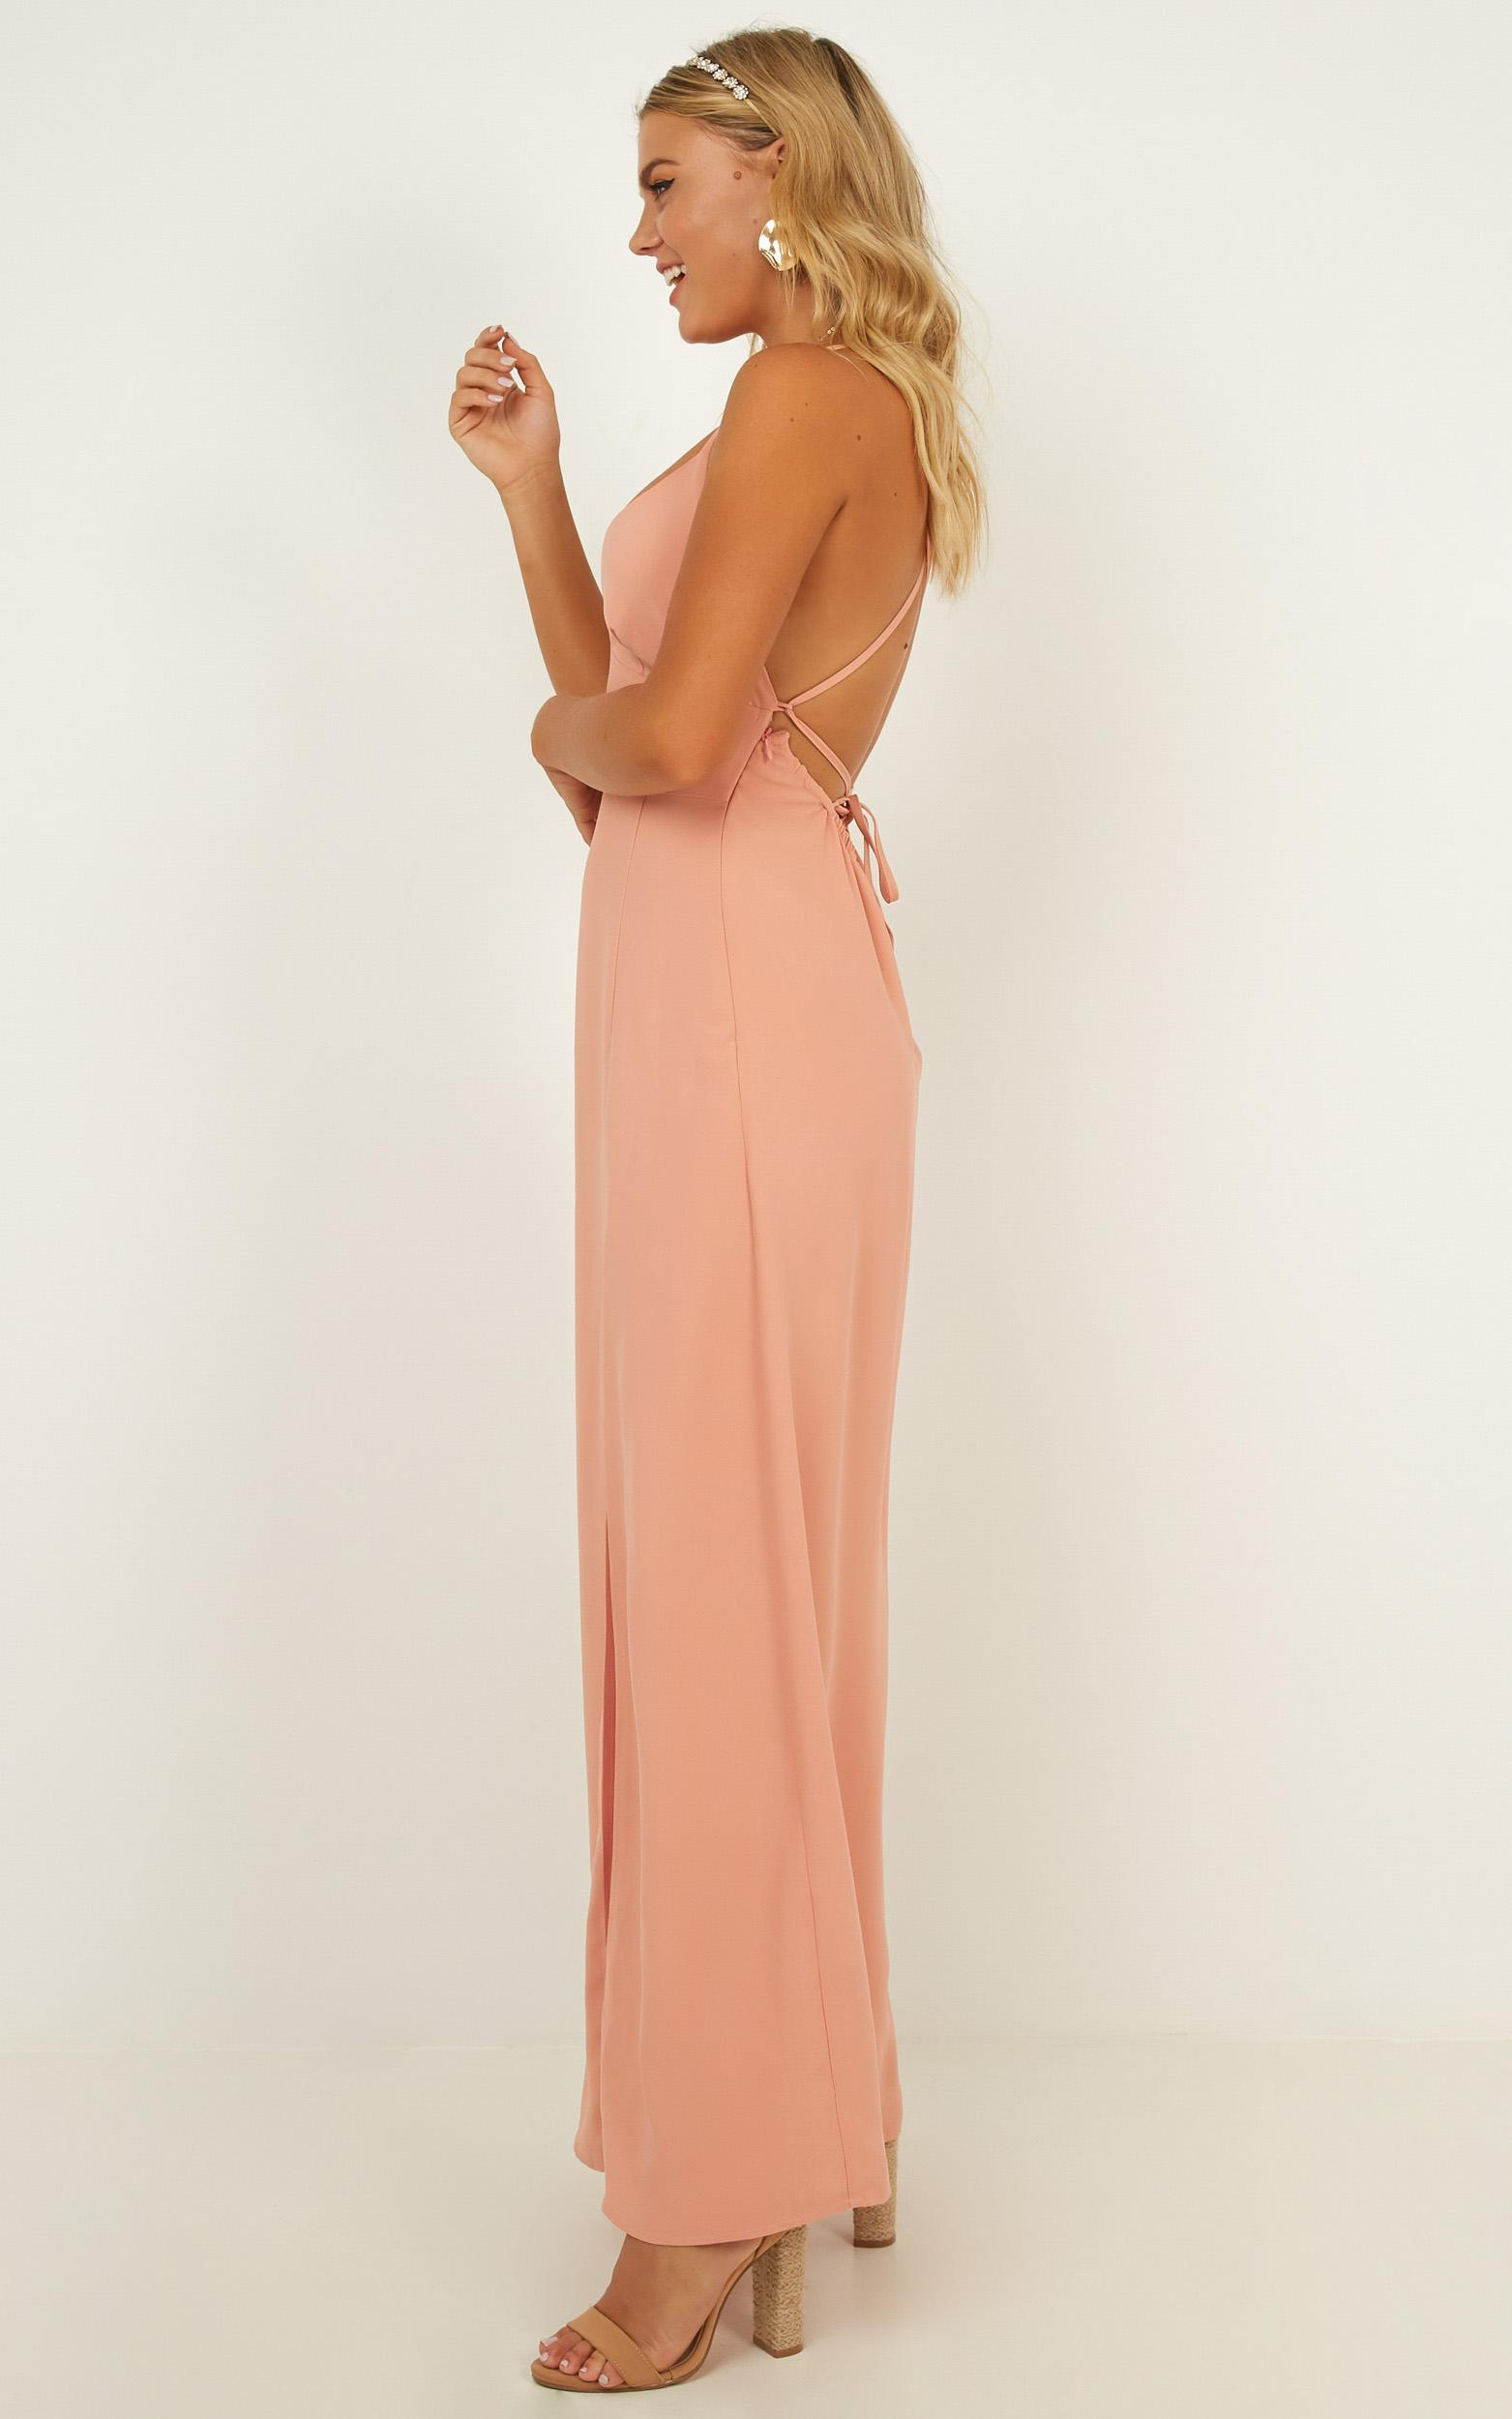 Royal Lady Dress in blush - 20 (XXXXL), Blush, hi-res image number null